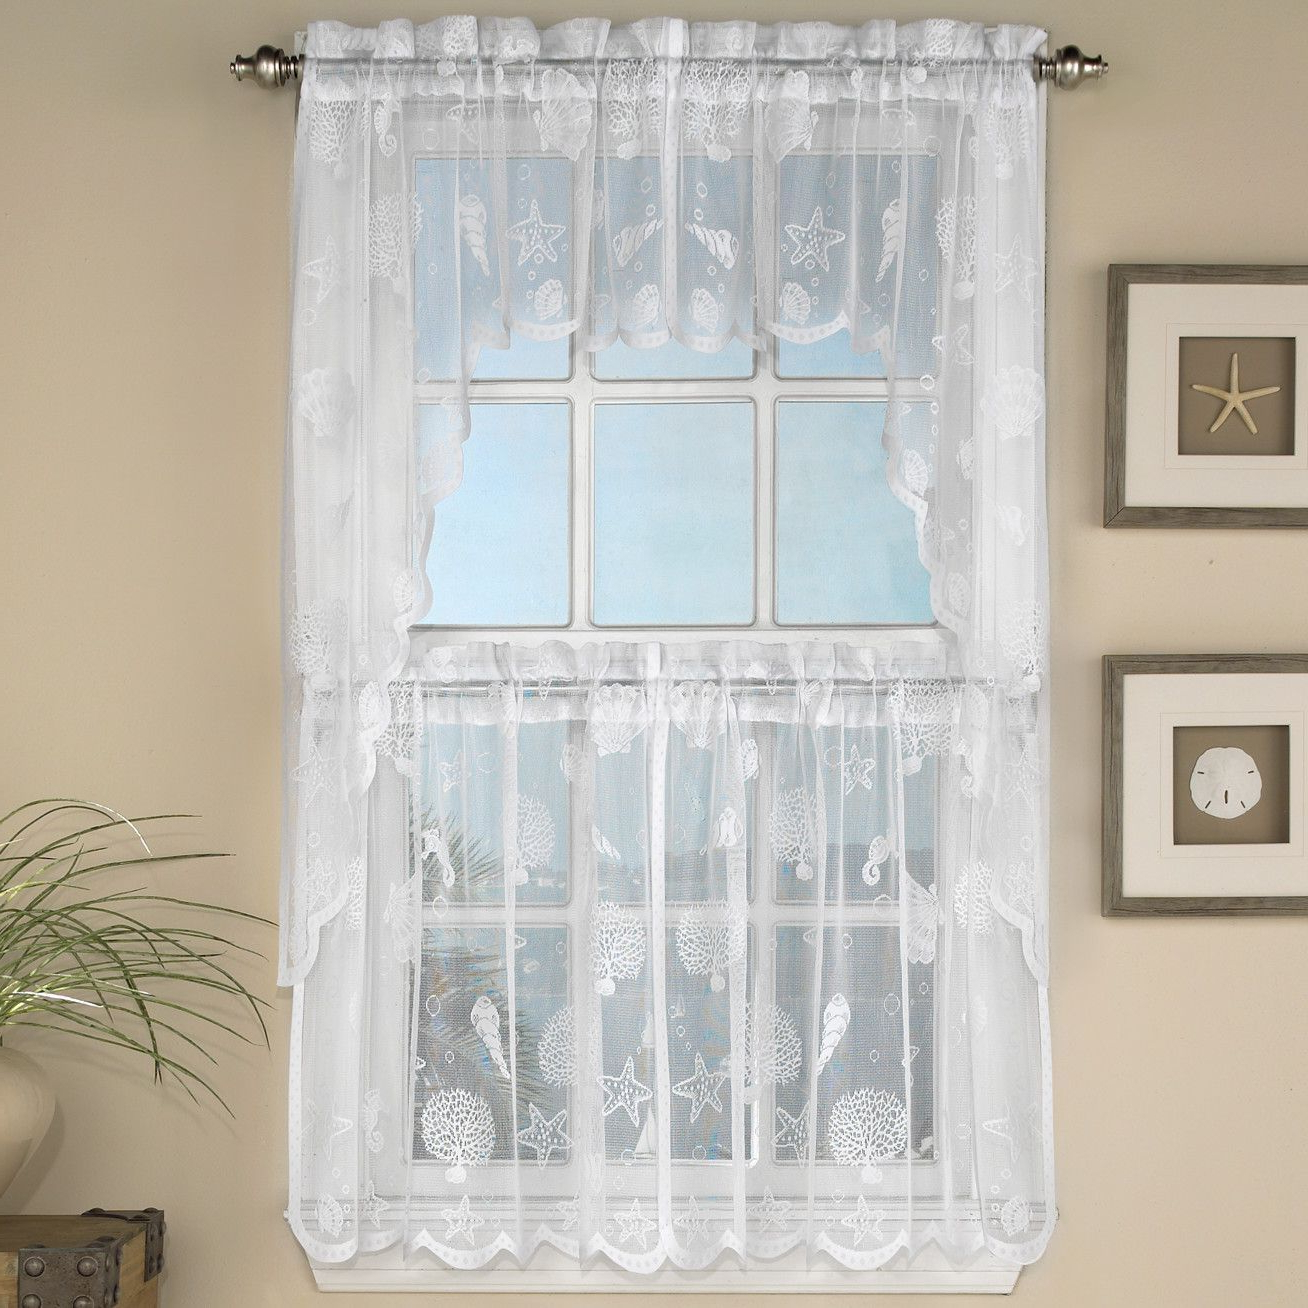 Semi Sheer Rod Pocket Kitchen Curtain Valance And Tiers Sets Throughout Most Up To Date Reef Marine Semi Sheer Rod Pocket Kitchen Curtain Panels (View 12 of 20)